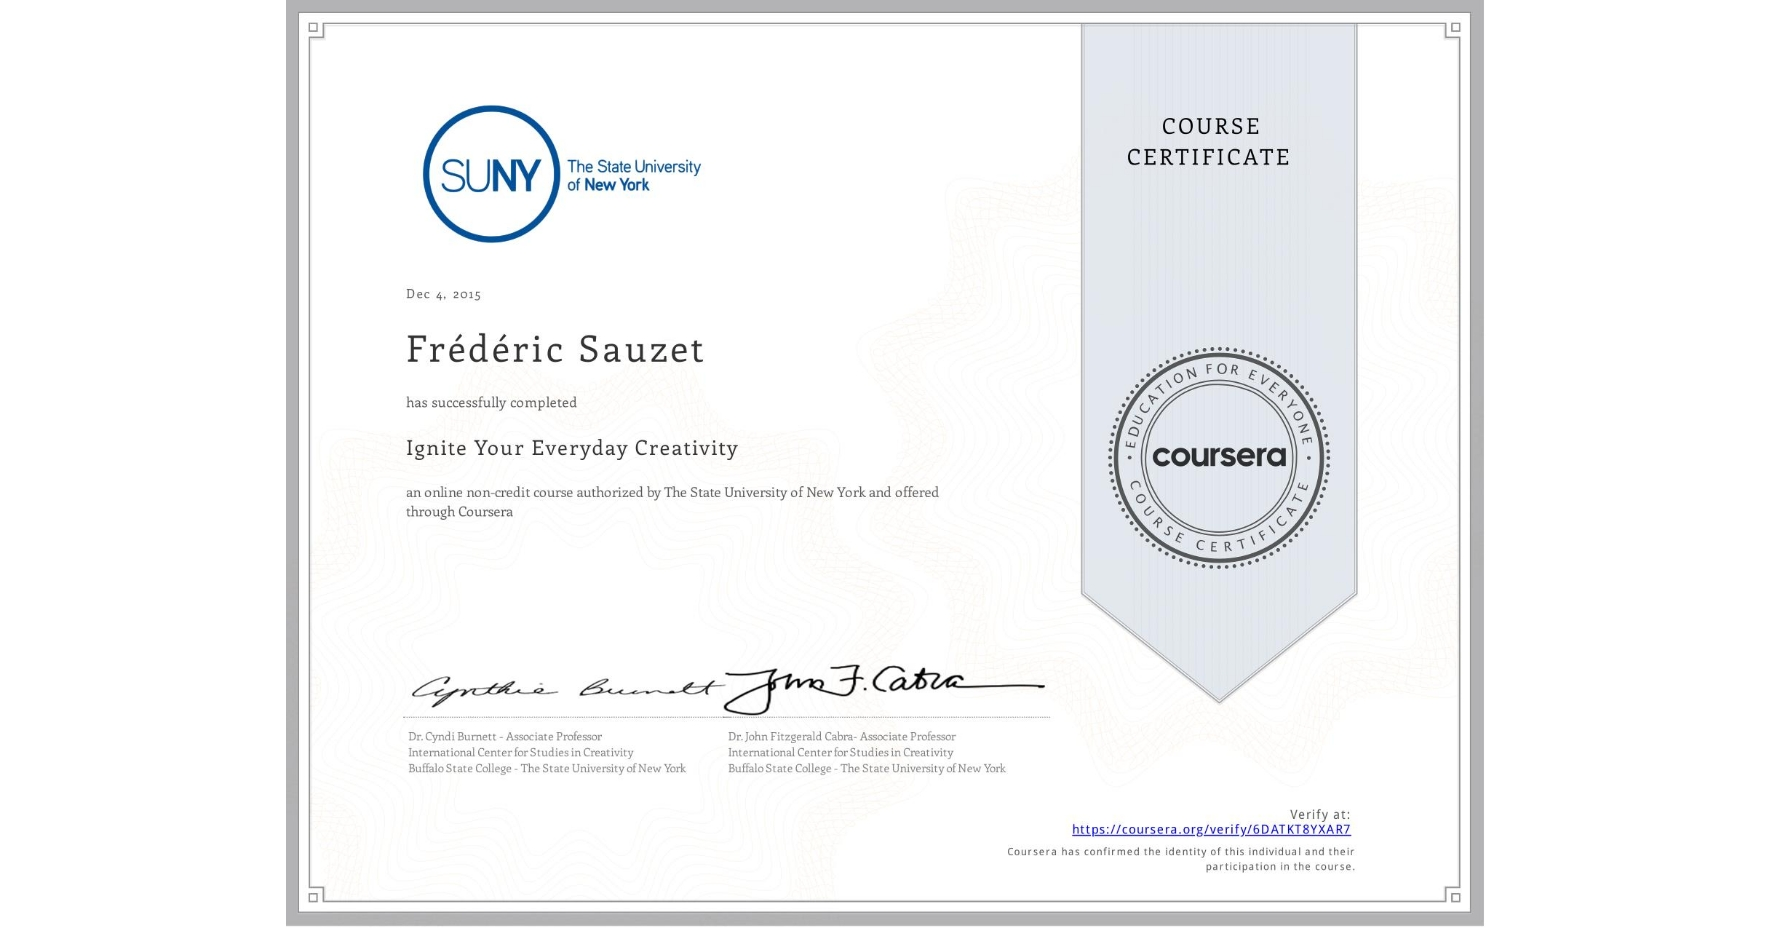 View certificate for Frédéric Sauzet, Ignite Your Everyday Creativity, an online non-credit course authorized by The State University of New York and offered through Coursera